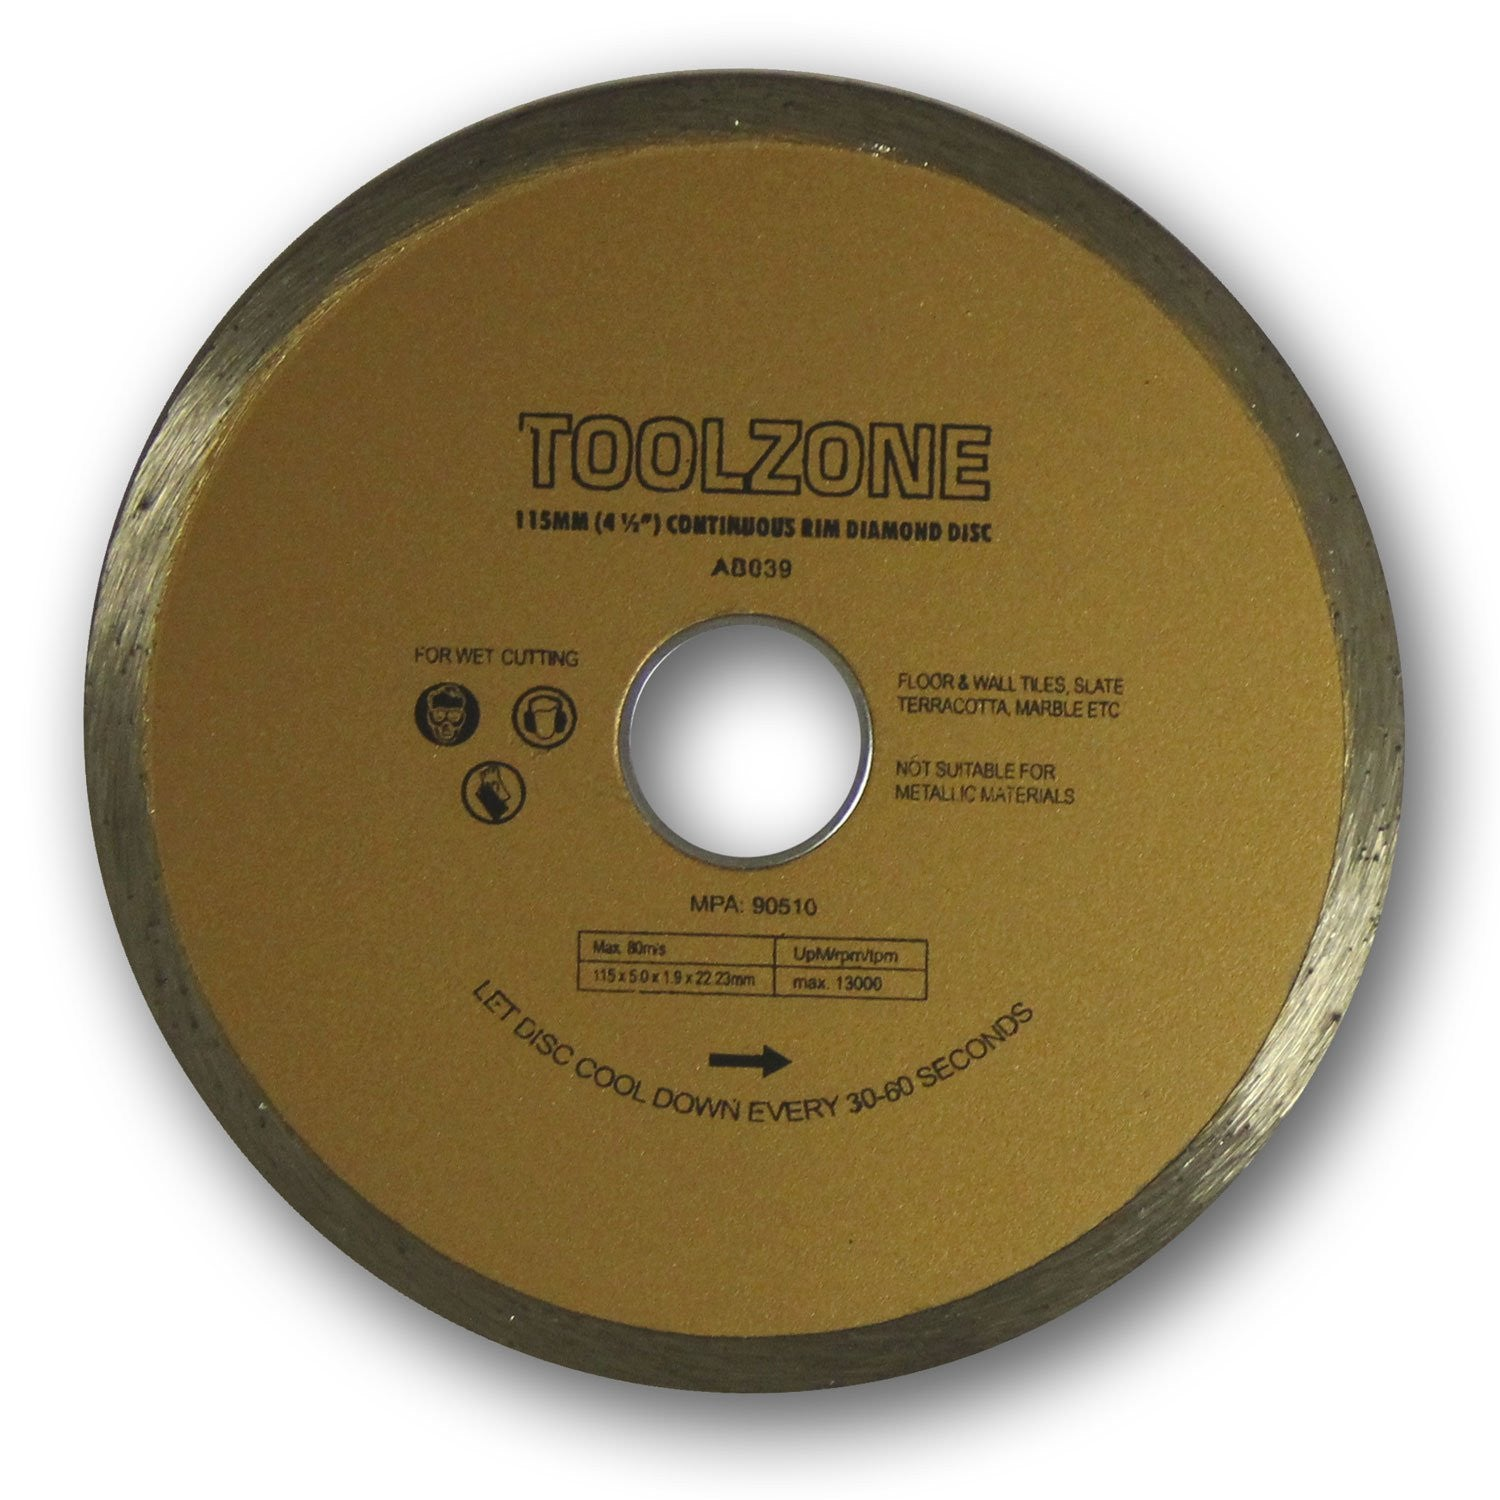 "Toolzone - Diamond Cutting Disc - 115mm (4 1/2"") - Continuous - RKL Tools & Hardware  - 1"